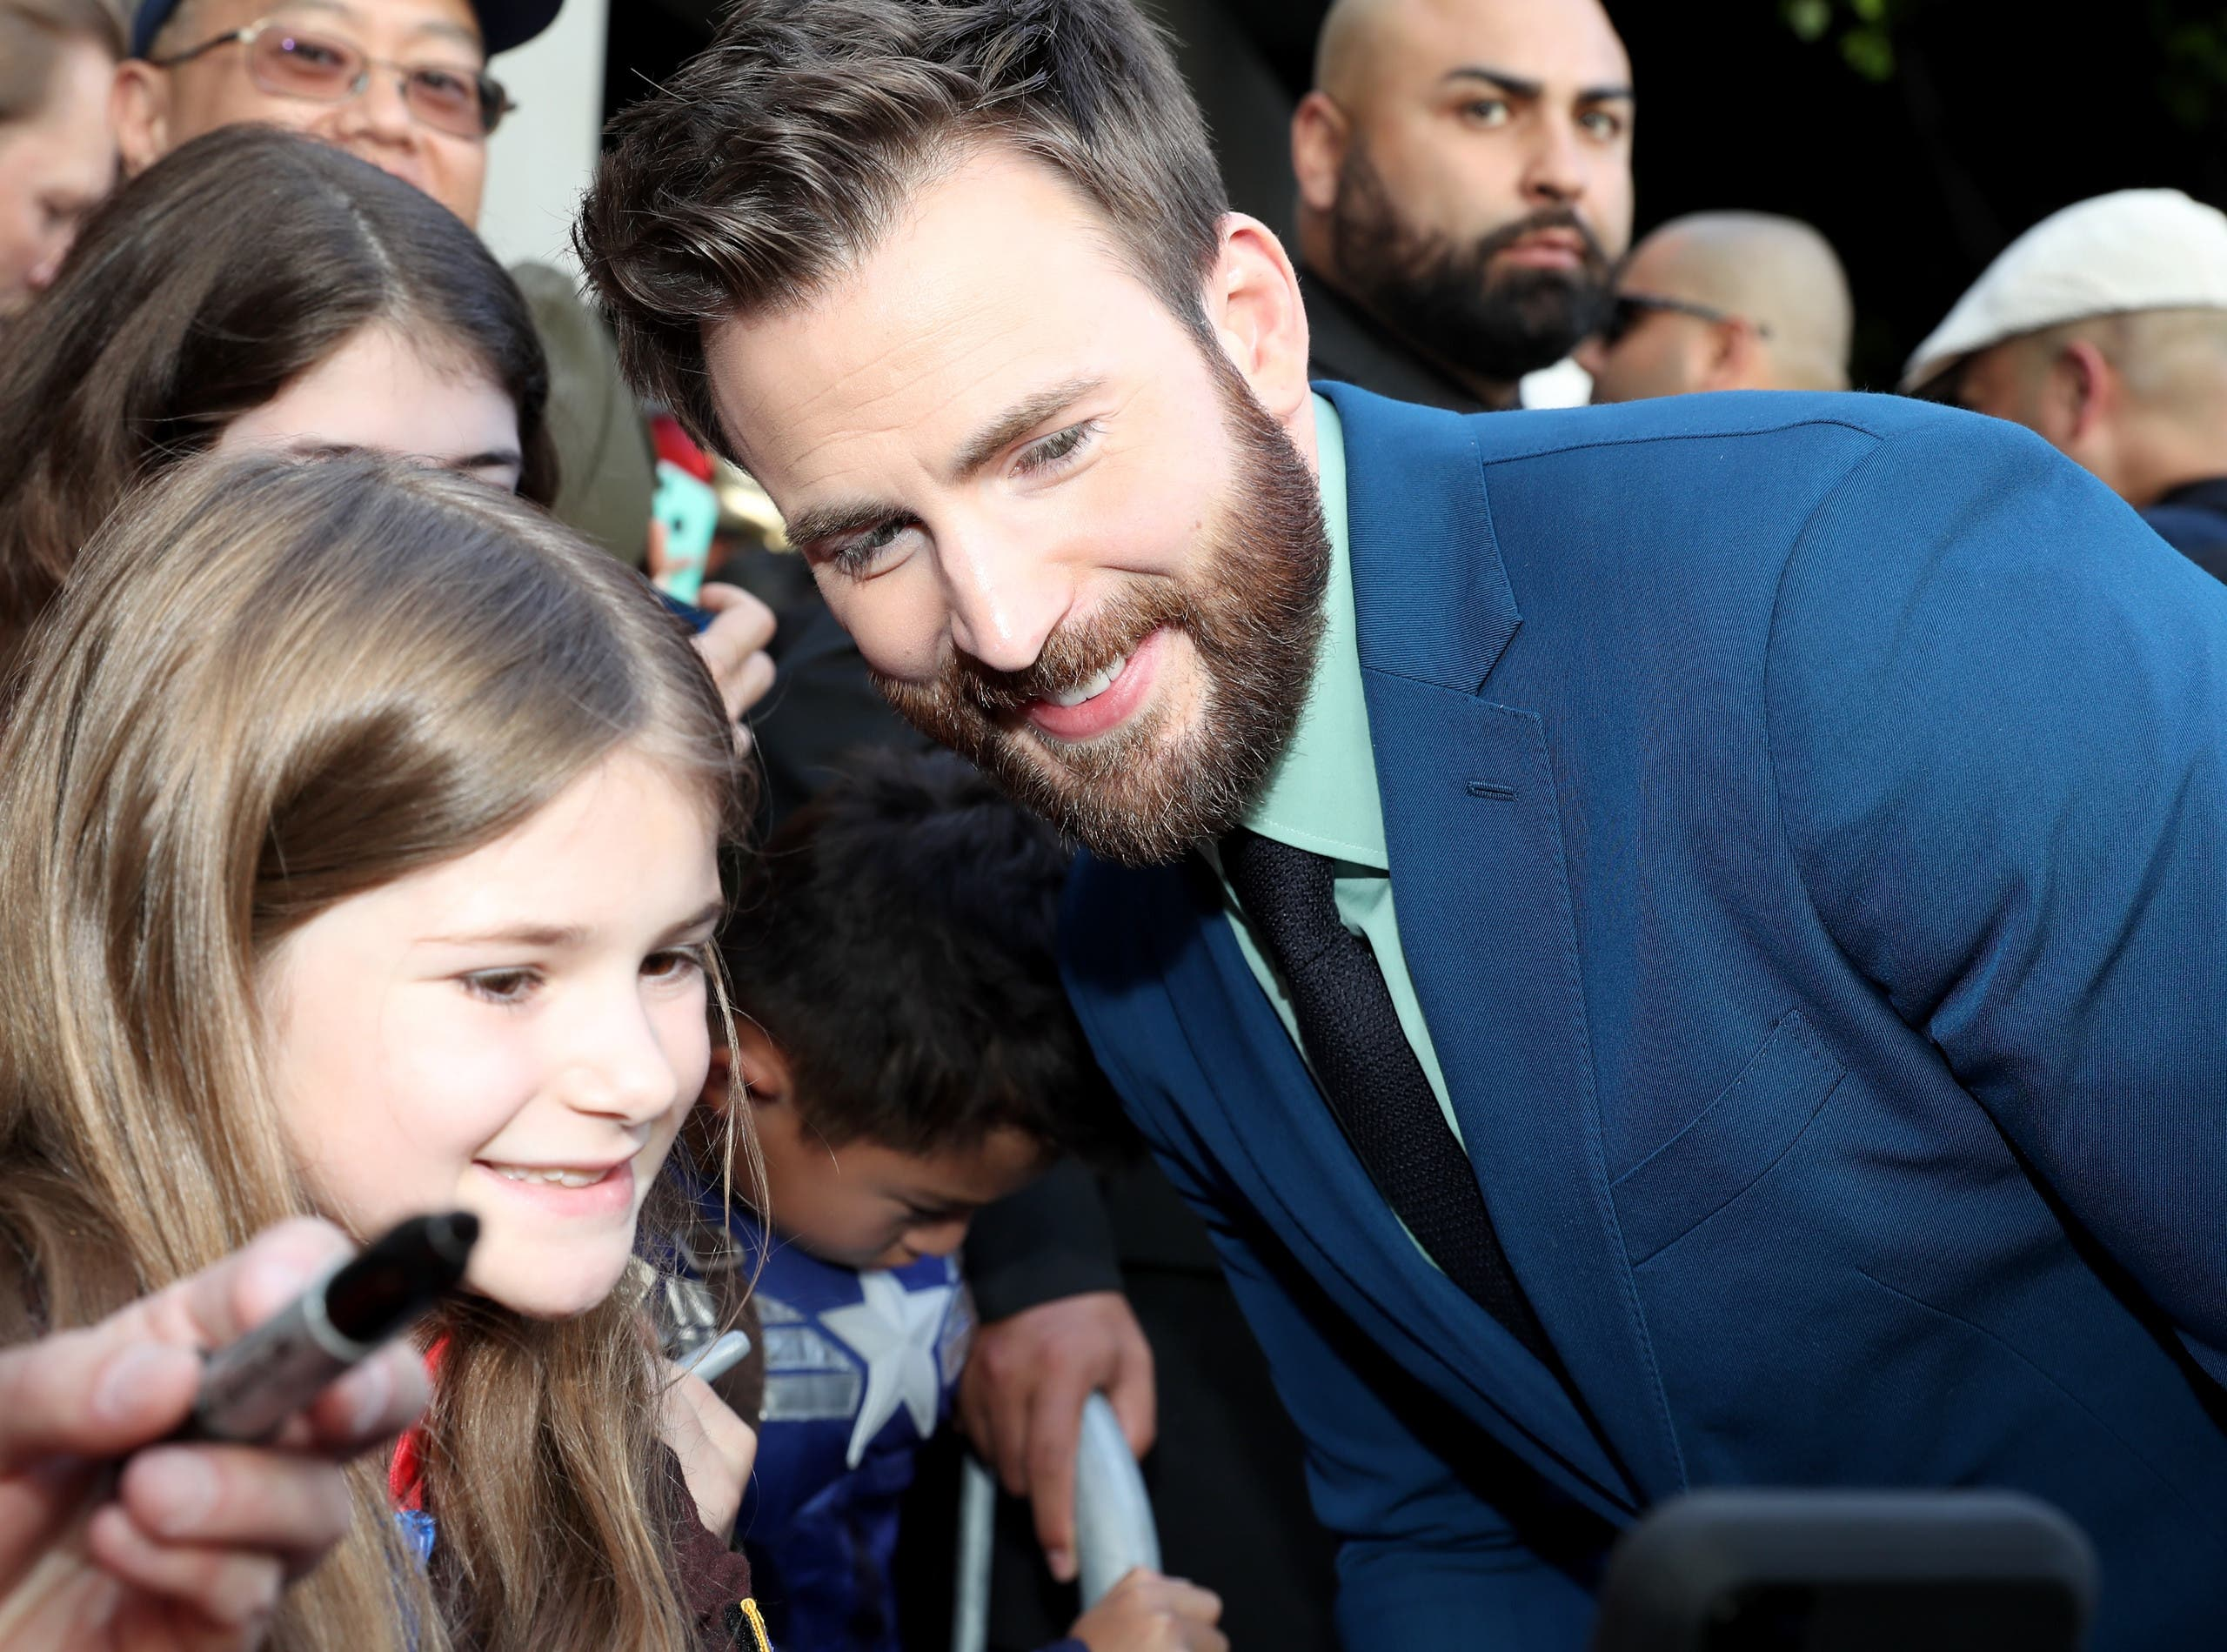 Chris Evans poses for a photo with a fan at the Avengers: Endgame premiere. (AFP)